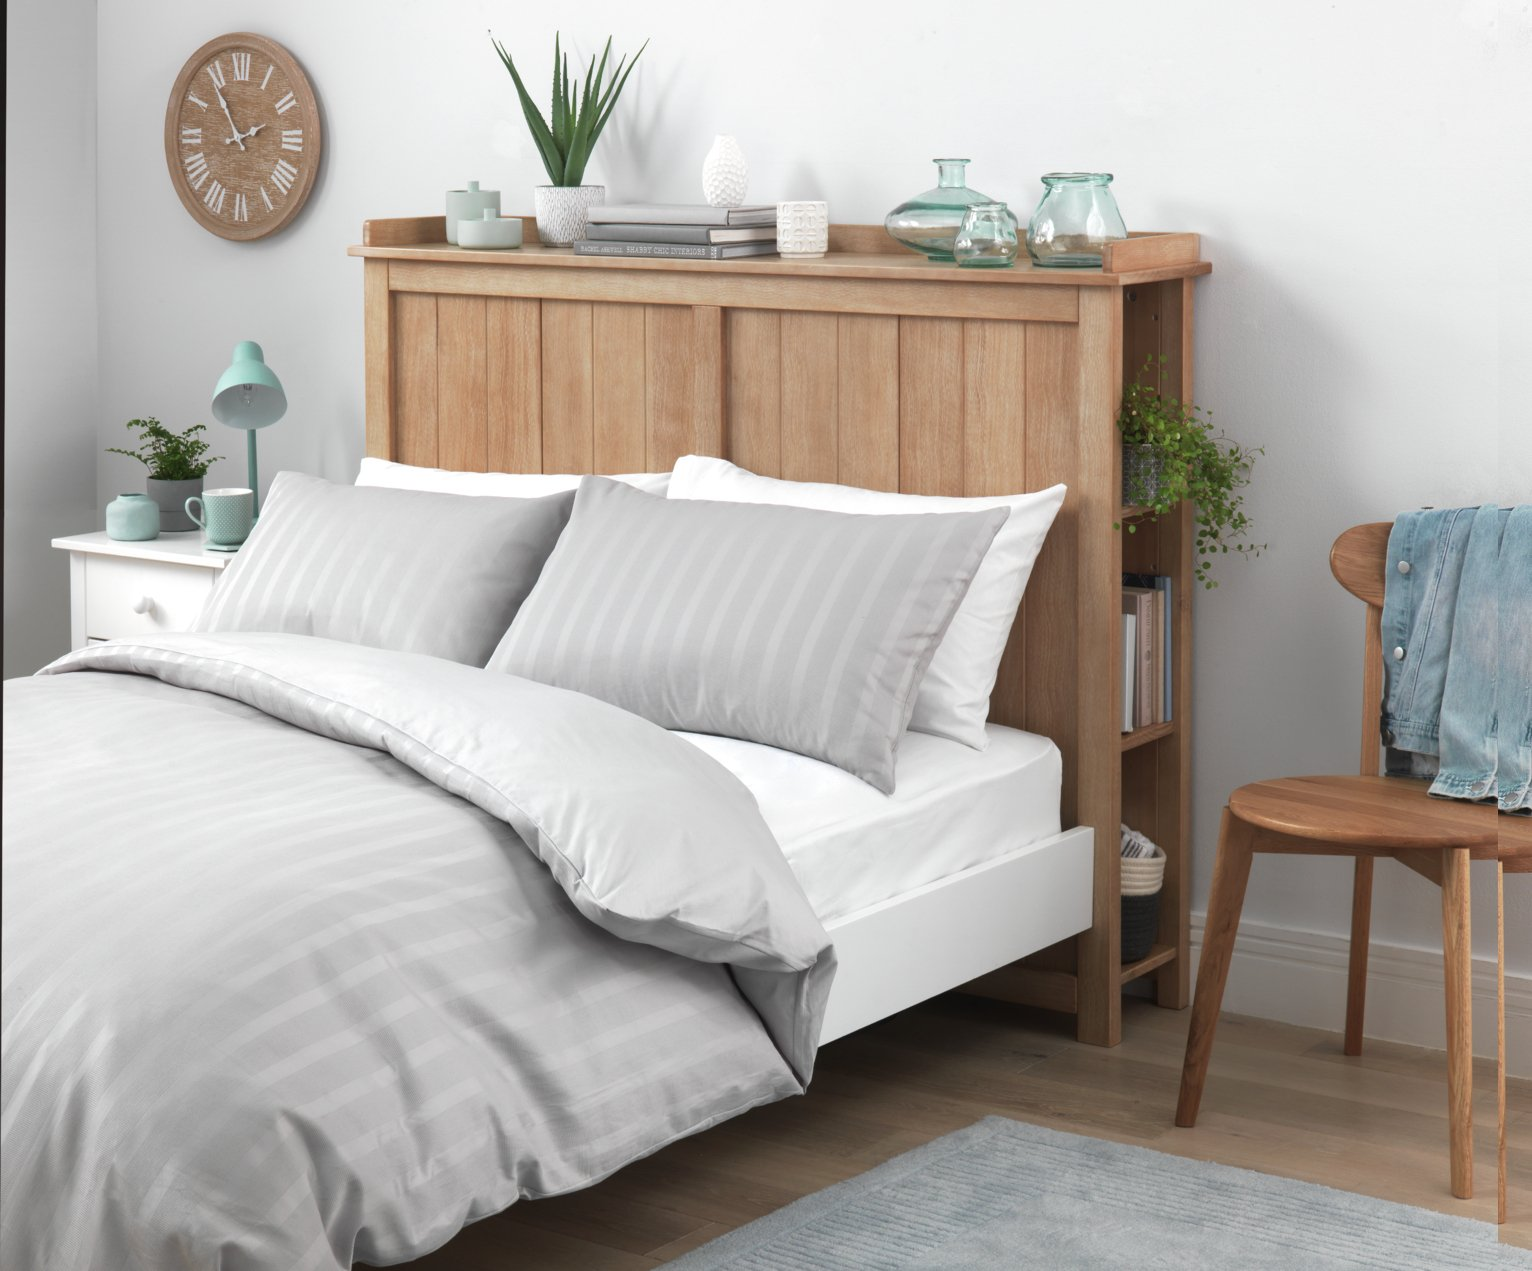 Argos Home Crusoe Double Storage Headboard - Pine